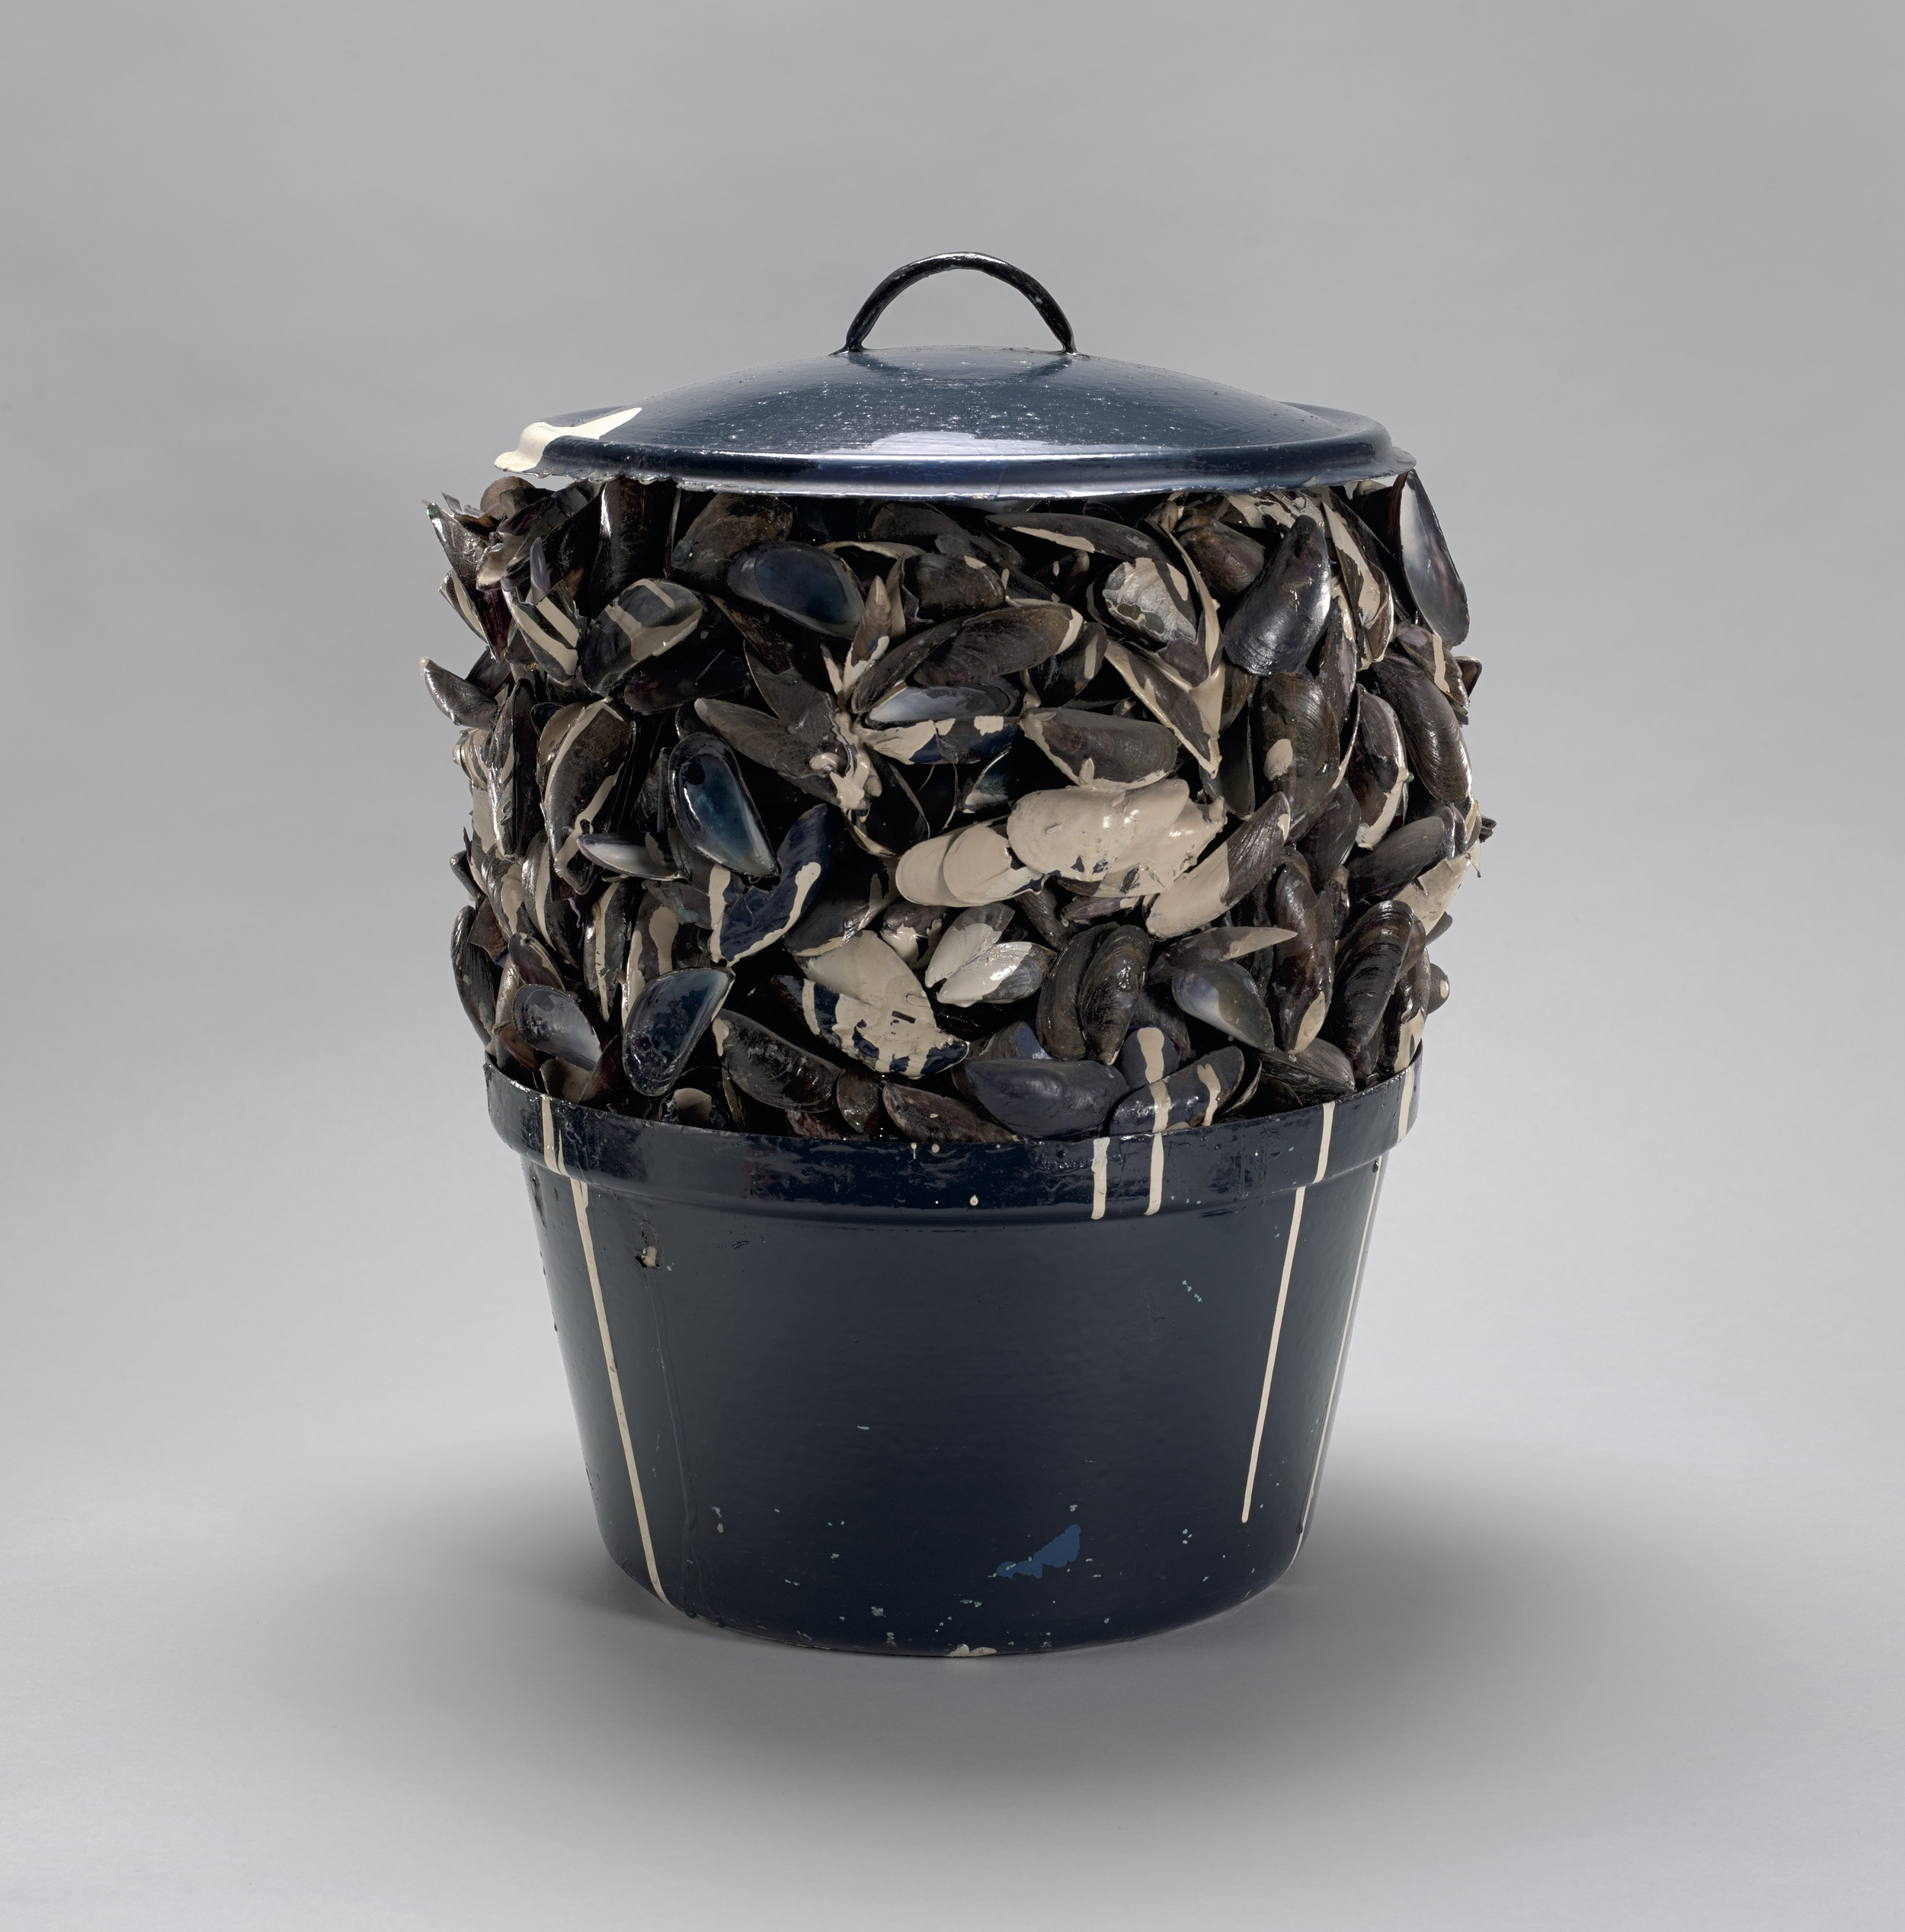 Marcel Broodthaers (Belgian, 1924–1976). Moules sauce blanche (Mussels with white sauce). 1967. Painted pot, mussel shells, paint, and tinted resin, 14 3/4 in. (37.5 cm) diam.; 19 1/8 in. (48.5 cm) high. Private collection, New York. © 2016 Estate of Marcel Broodthaers / Artists Rights Society (ARS), New York / SABAM, Brussels